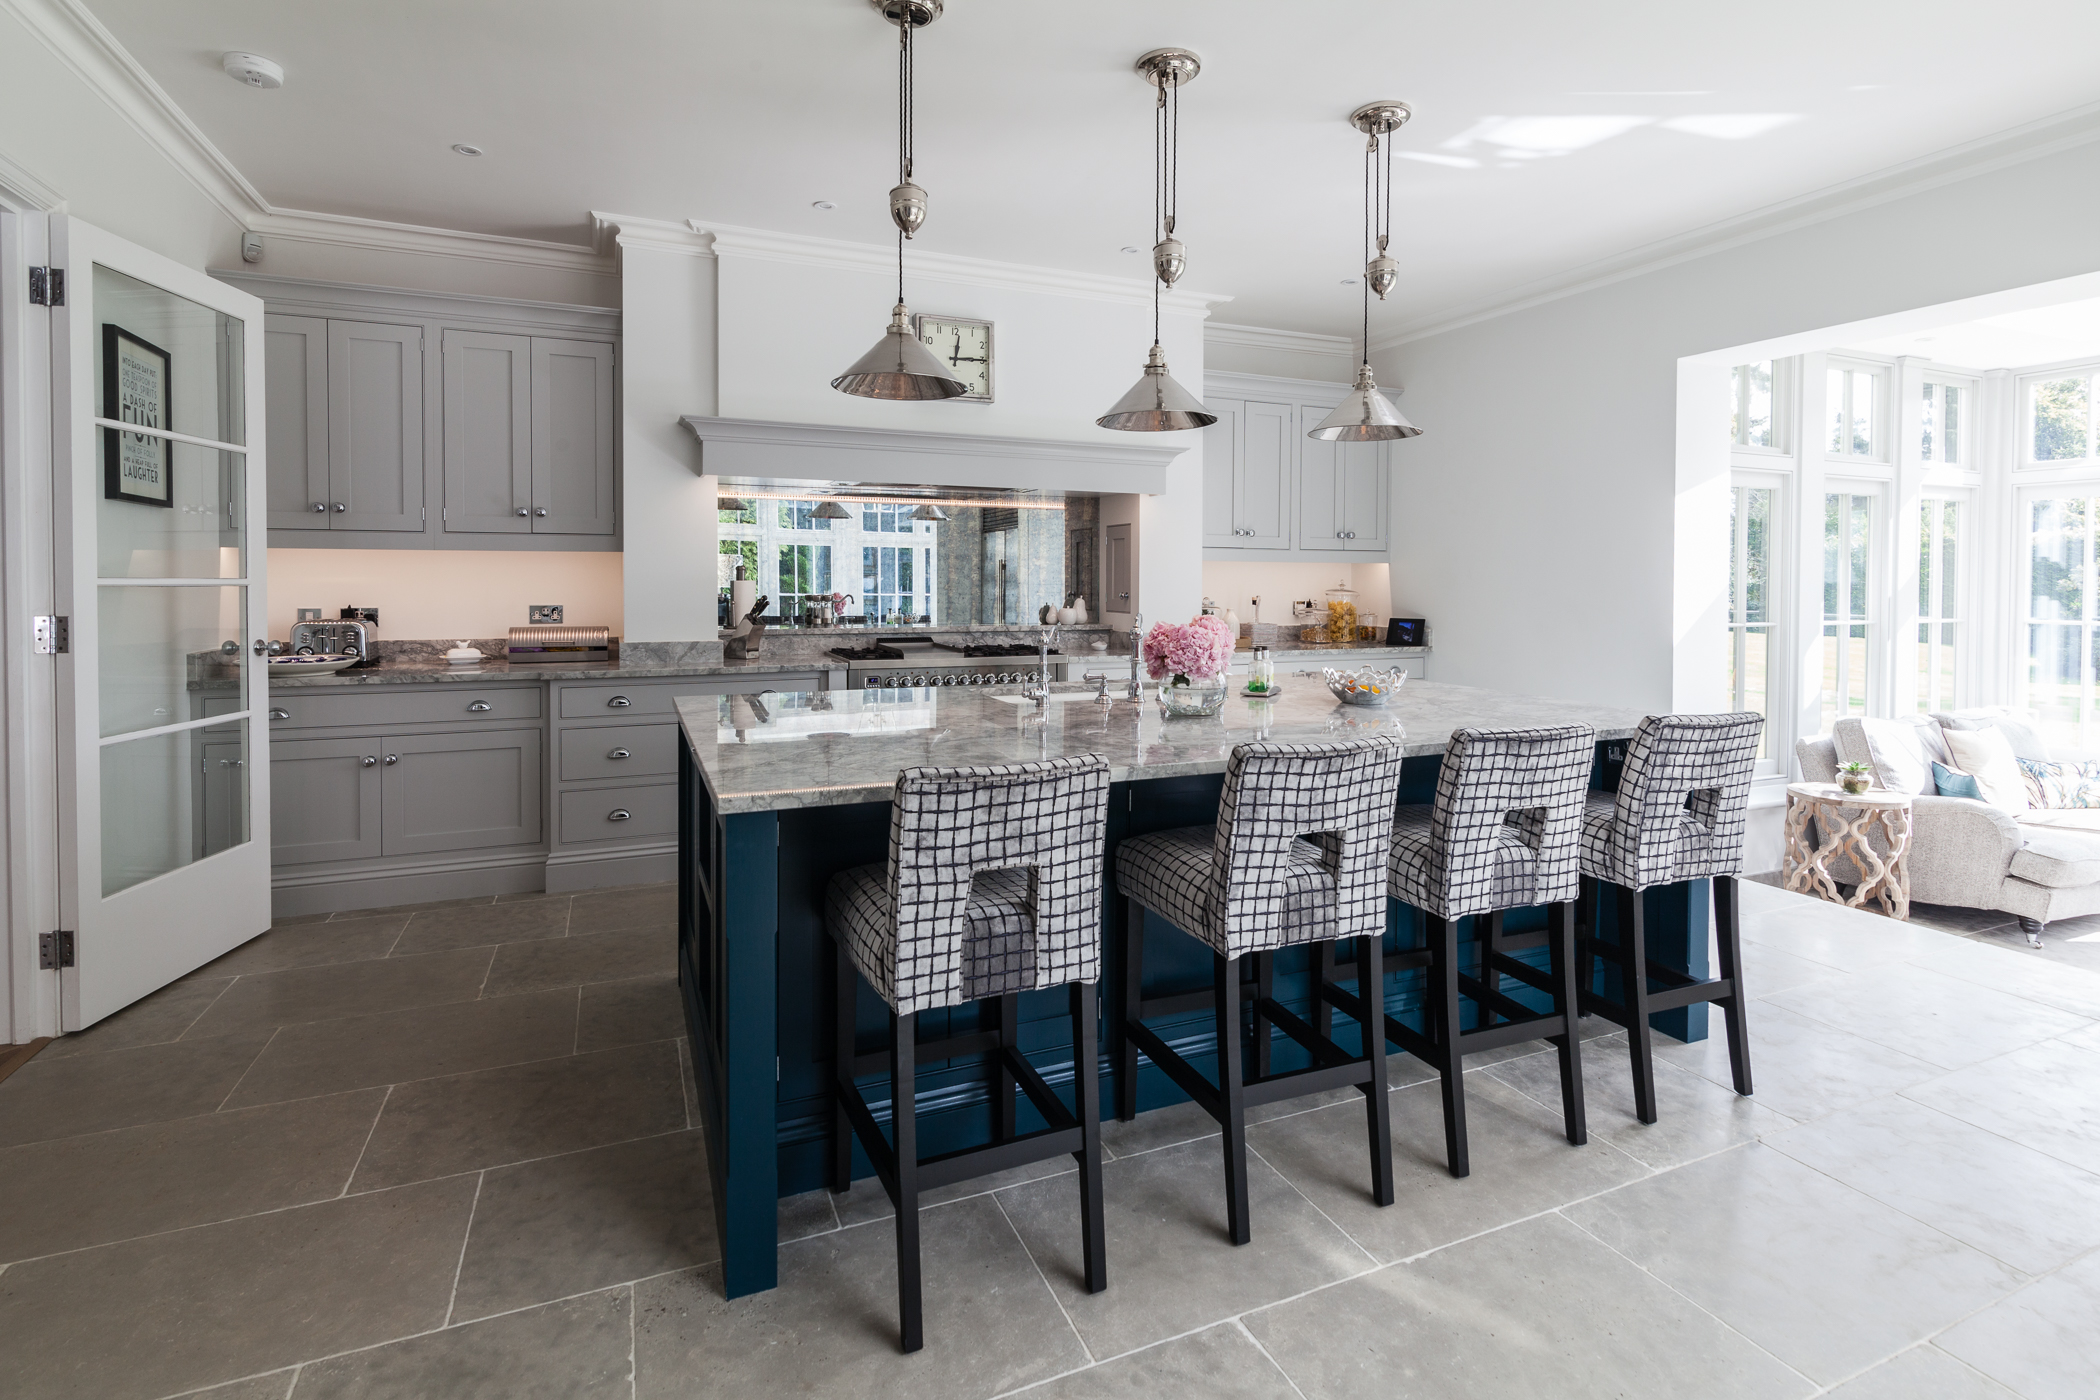 bespoke kitchen design chorleywood